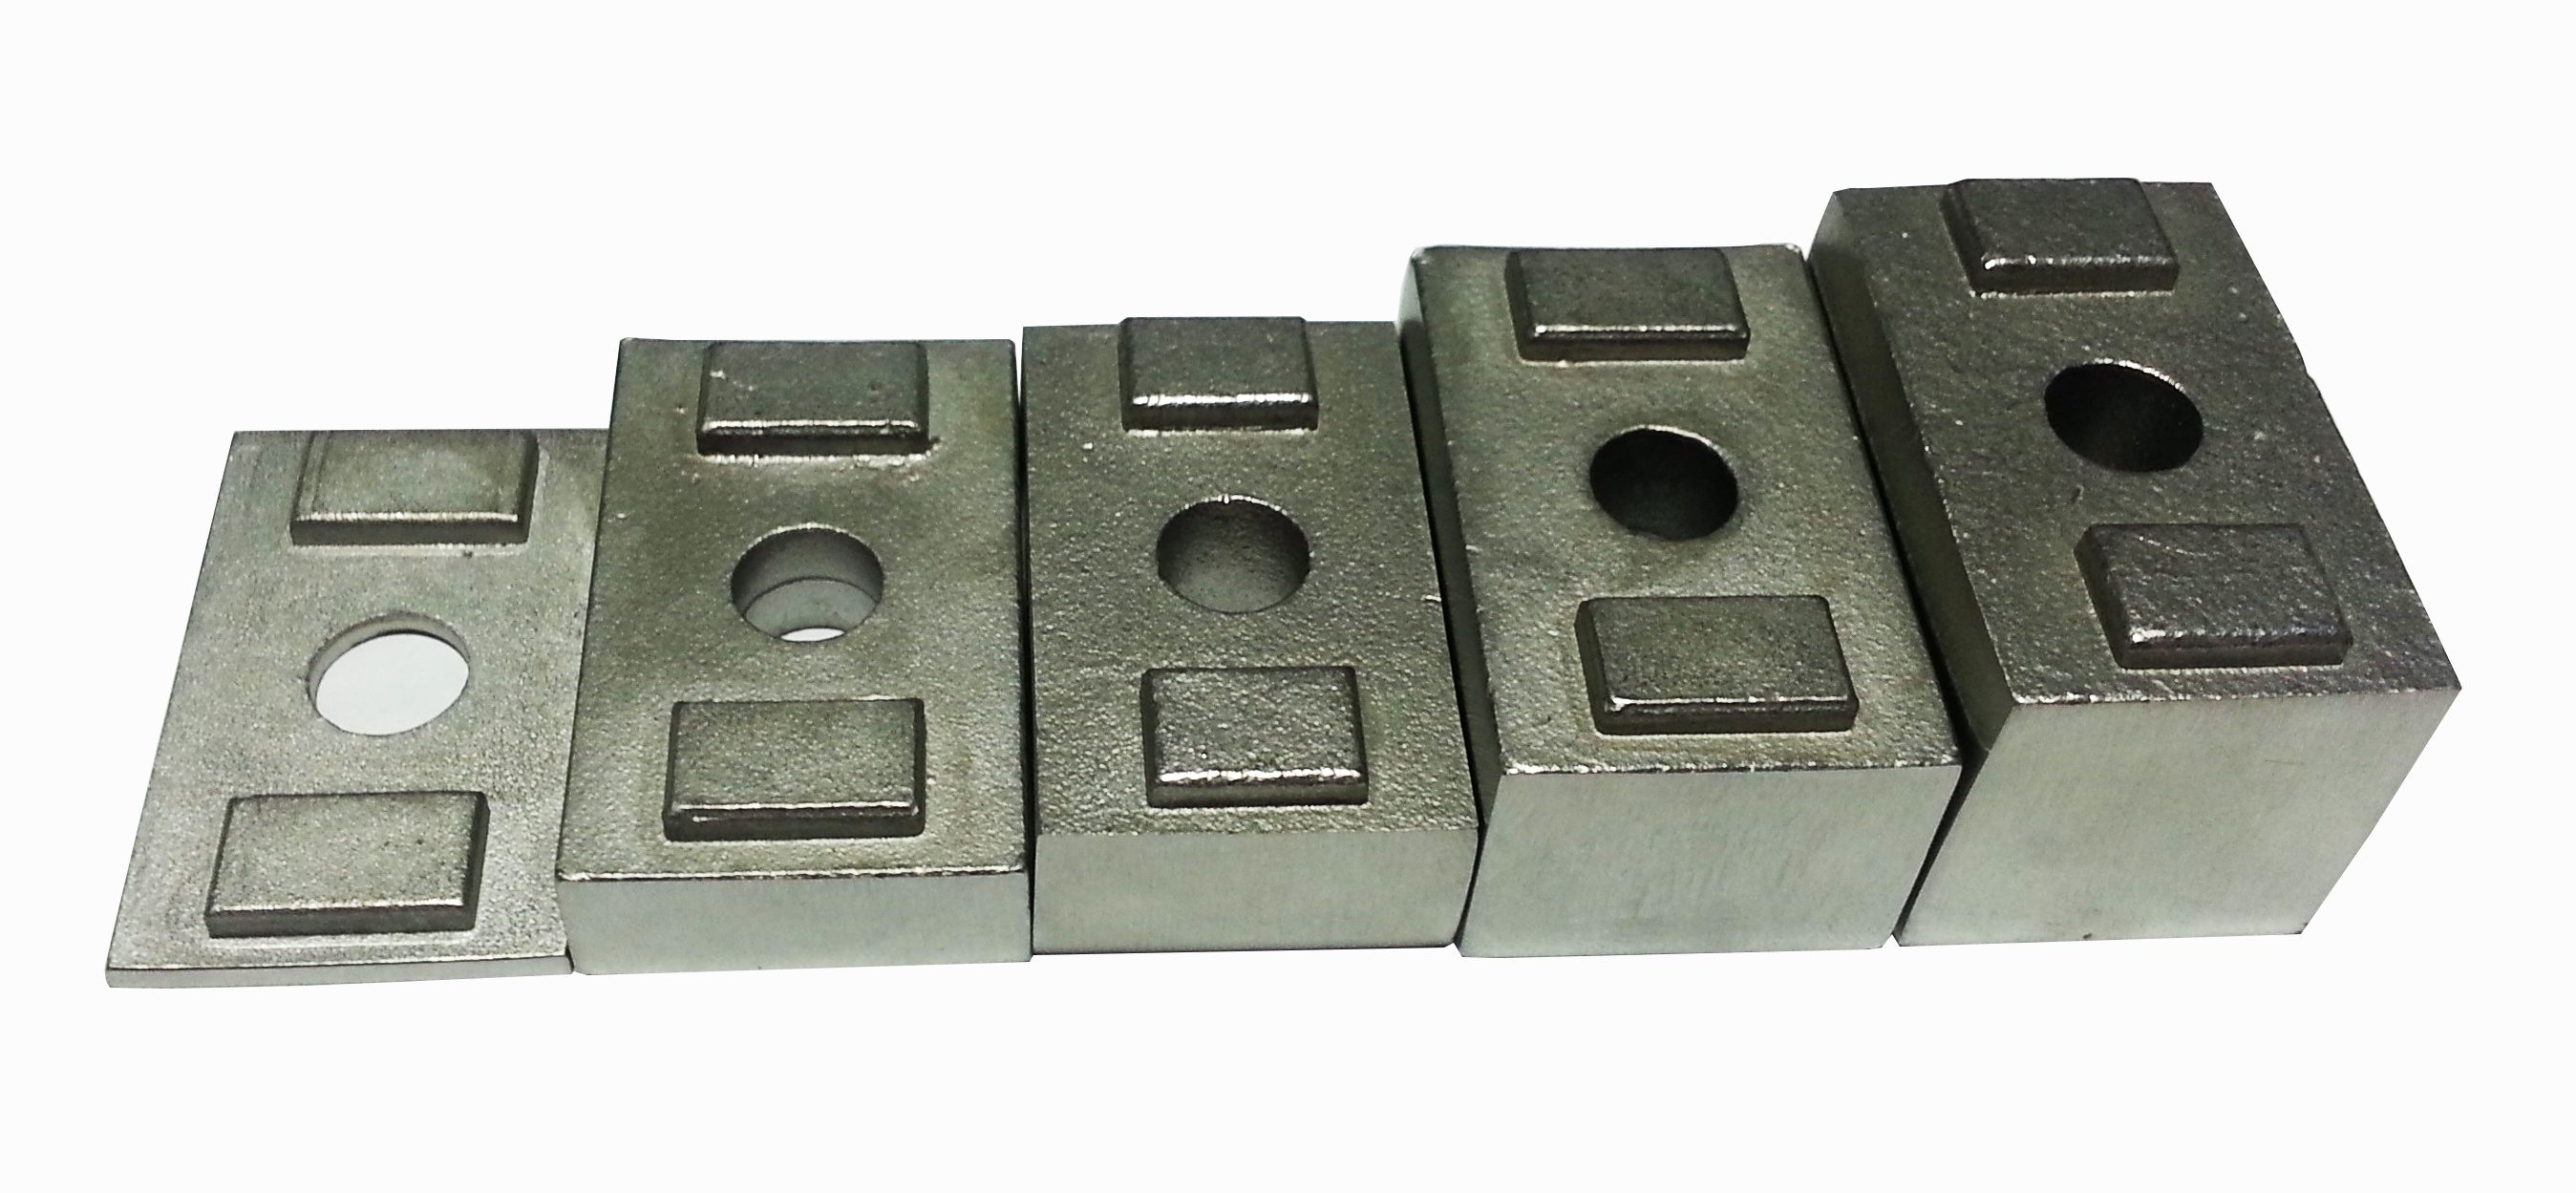 Invisirail 13mm spacer for glass clamps